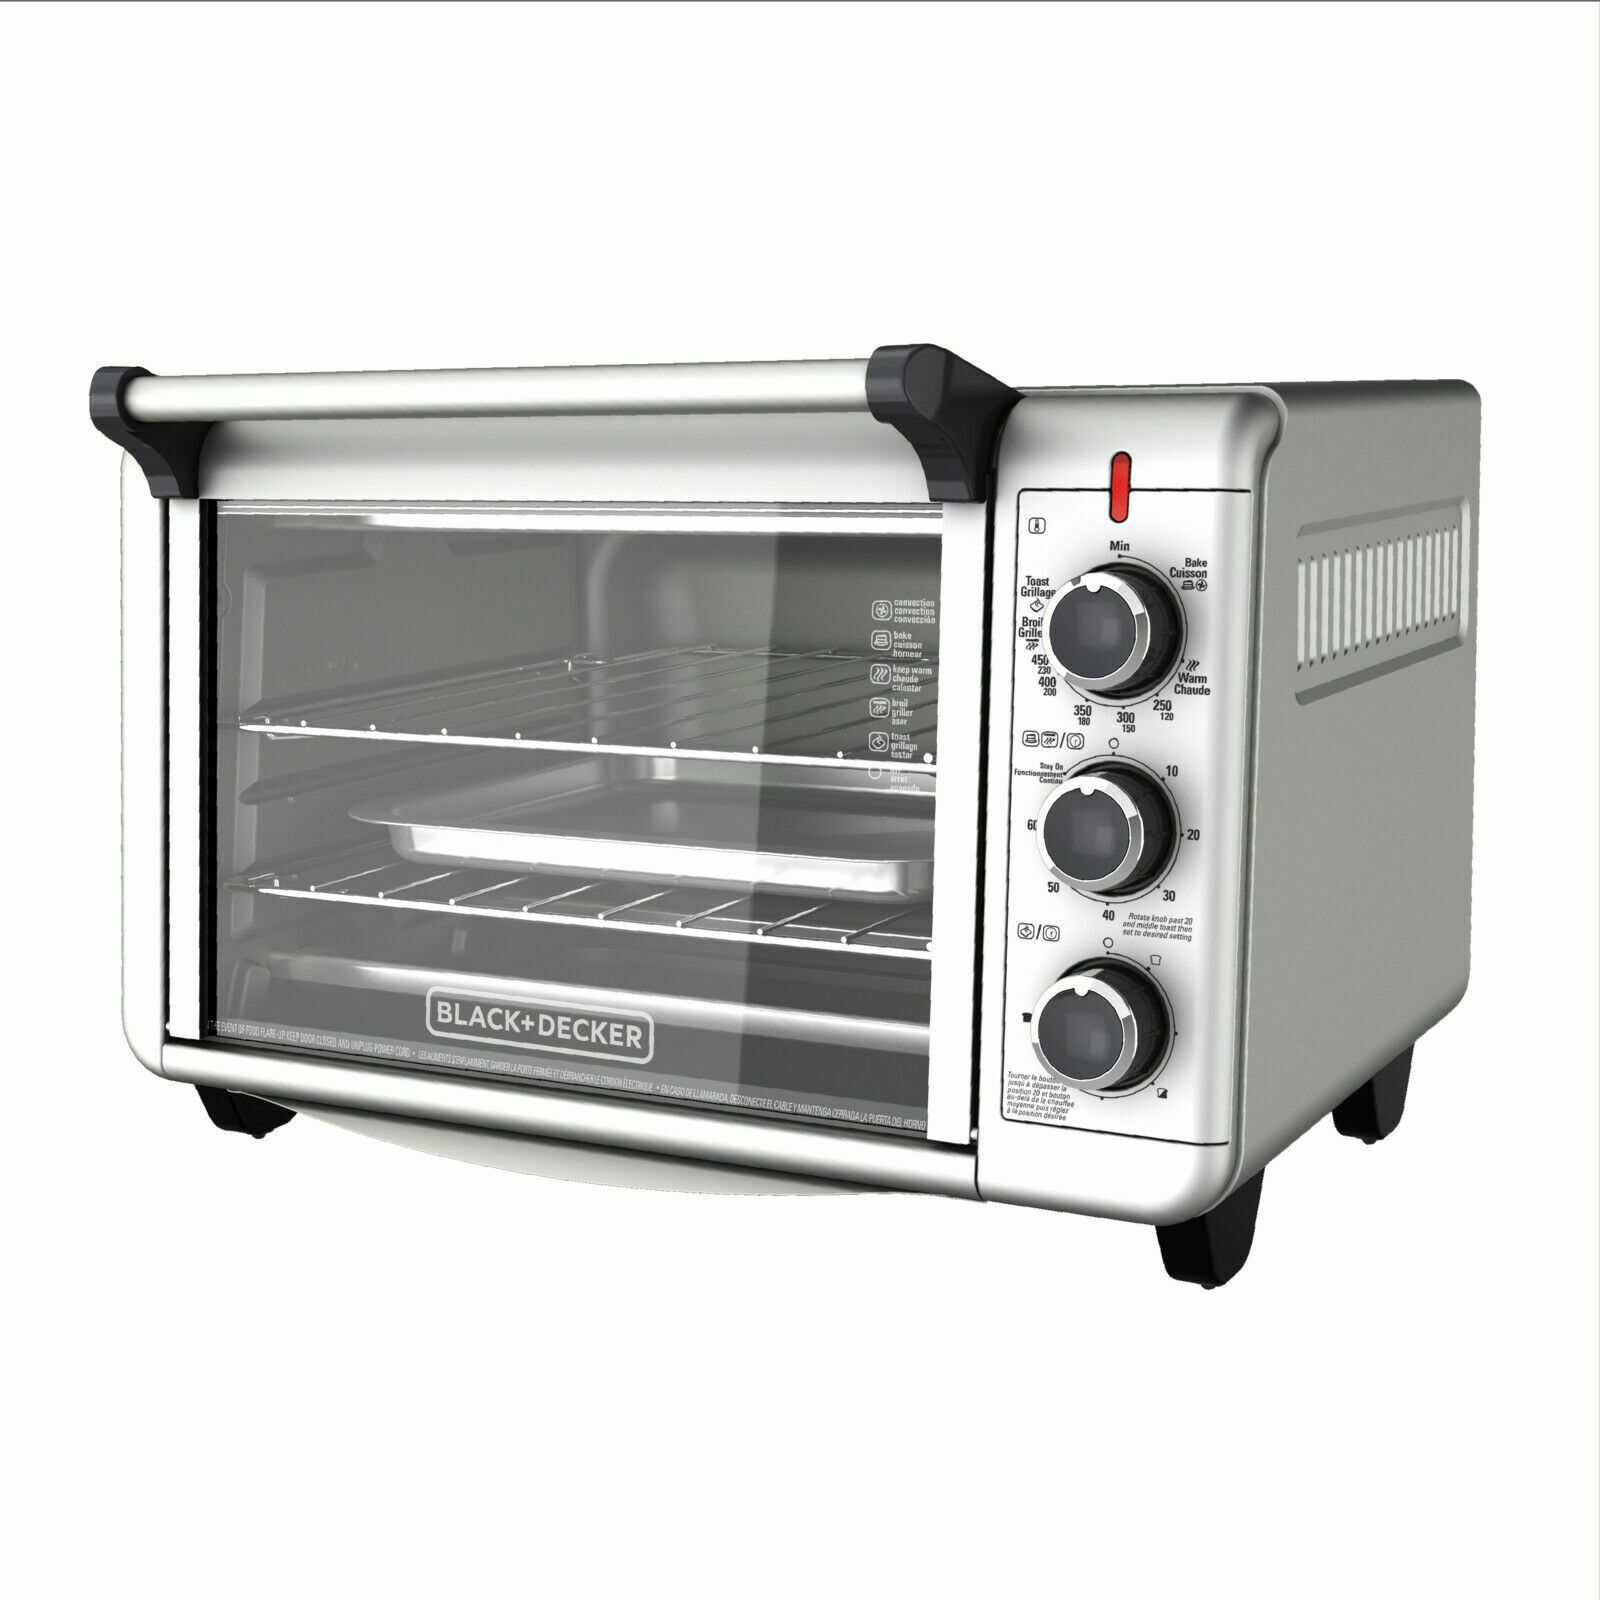 Details About Counter Toaster Oven Conventional Office Large